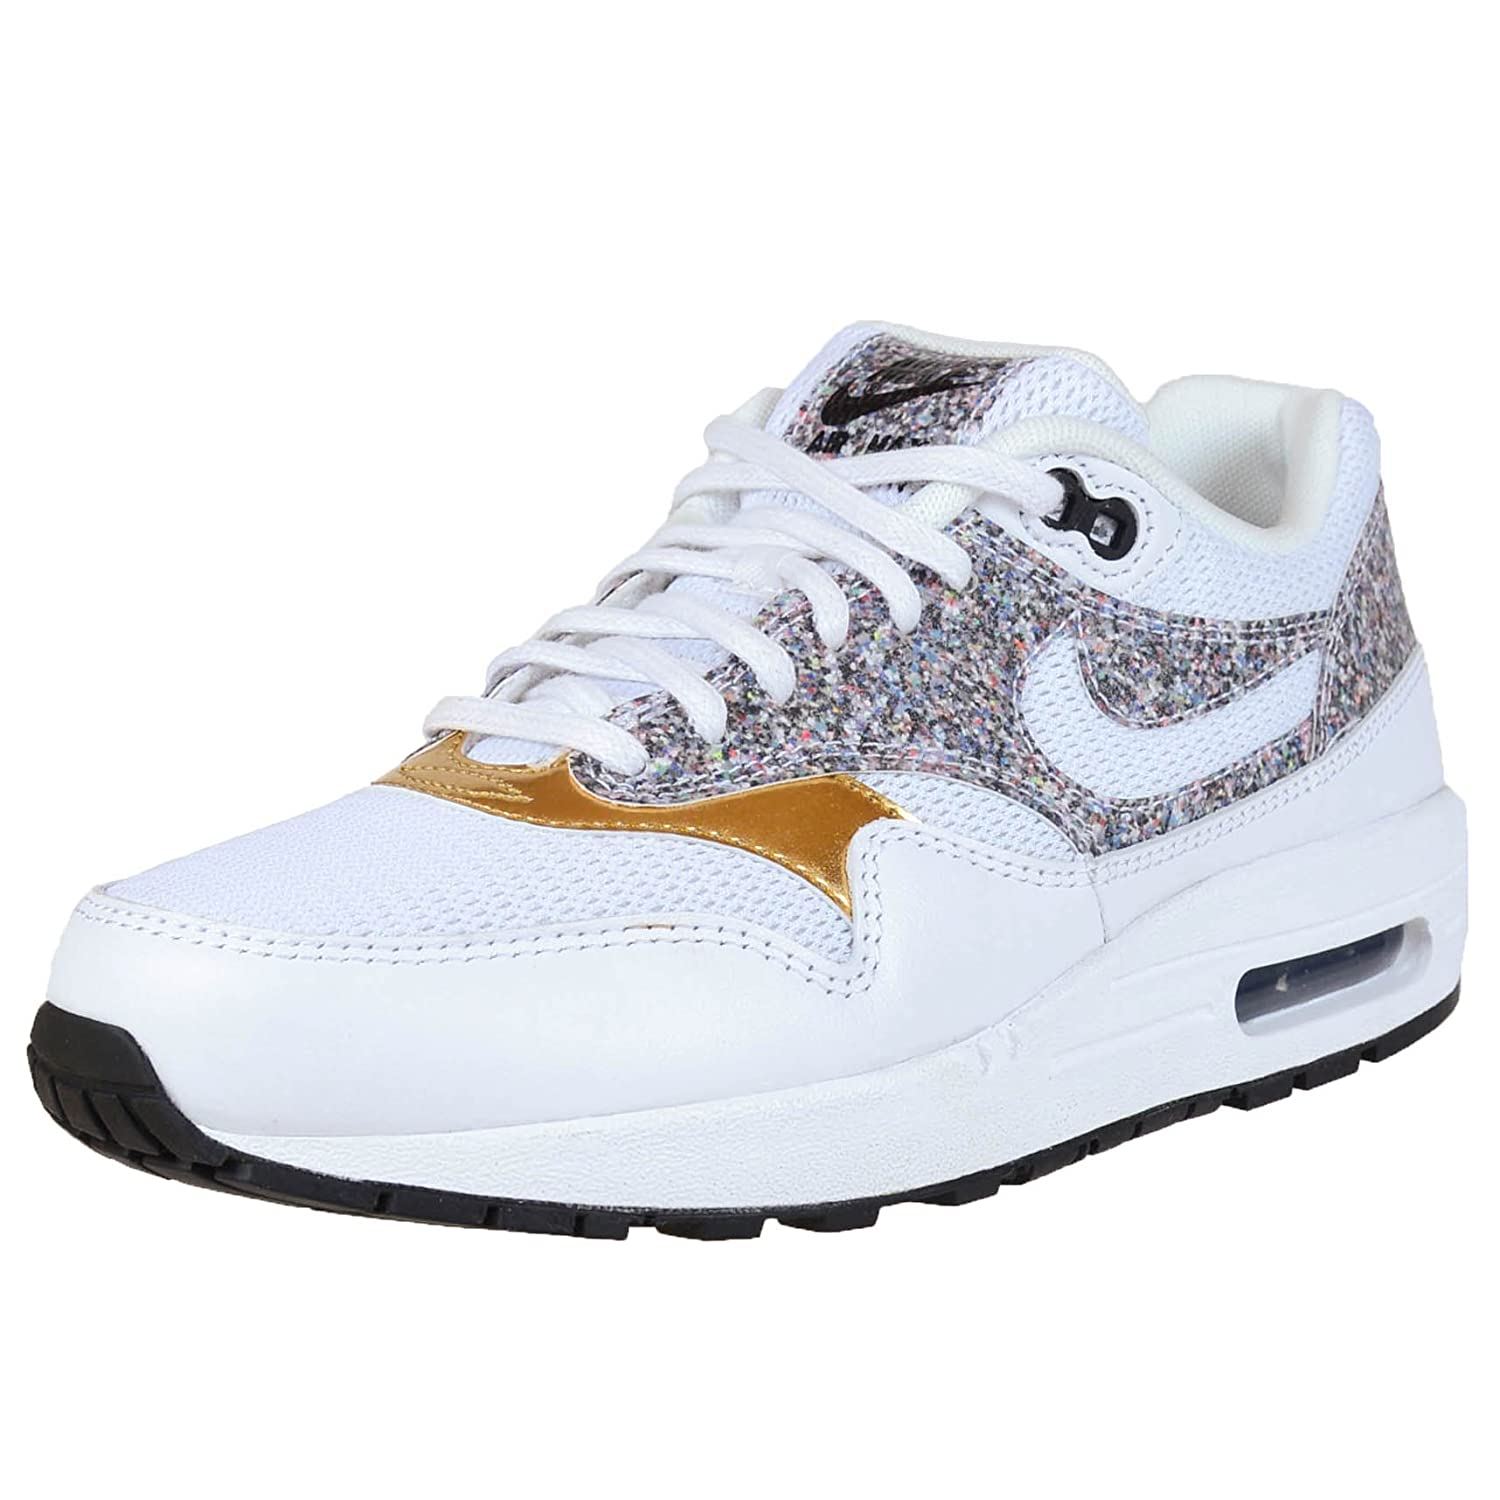 Nike Womens Air Max 1 Se Running Trainers 881101 Sneakers Shoes ホワイト/ホワイト/ブラック 9 B(M) US